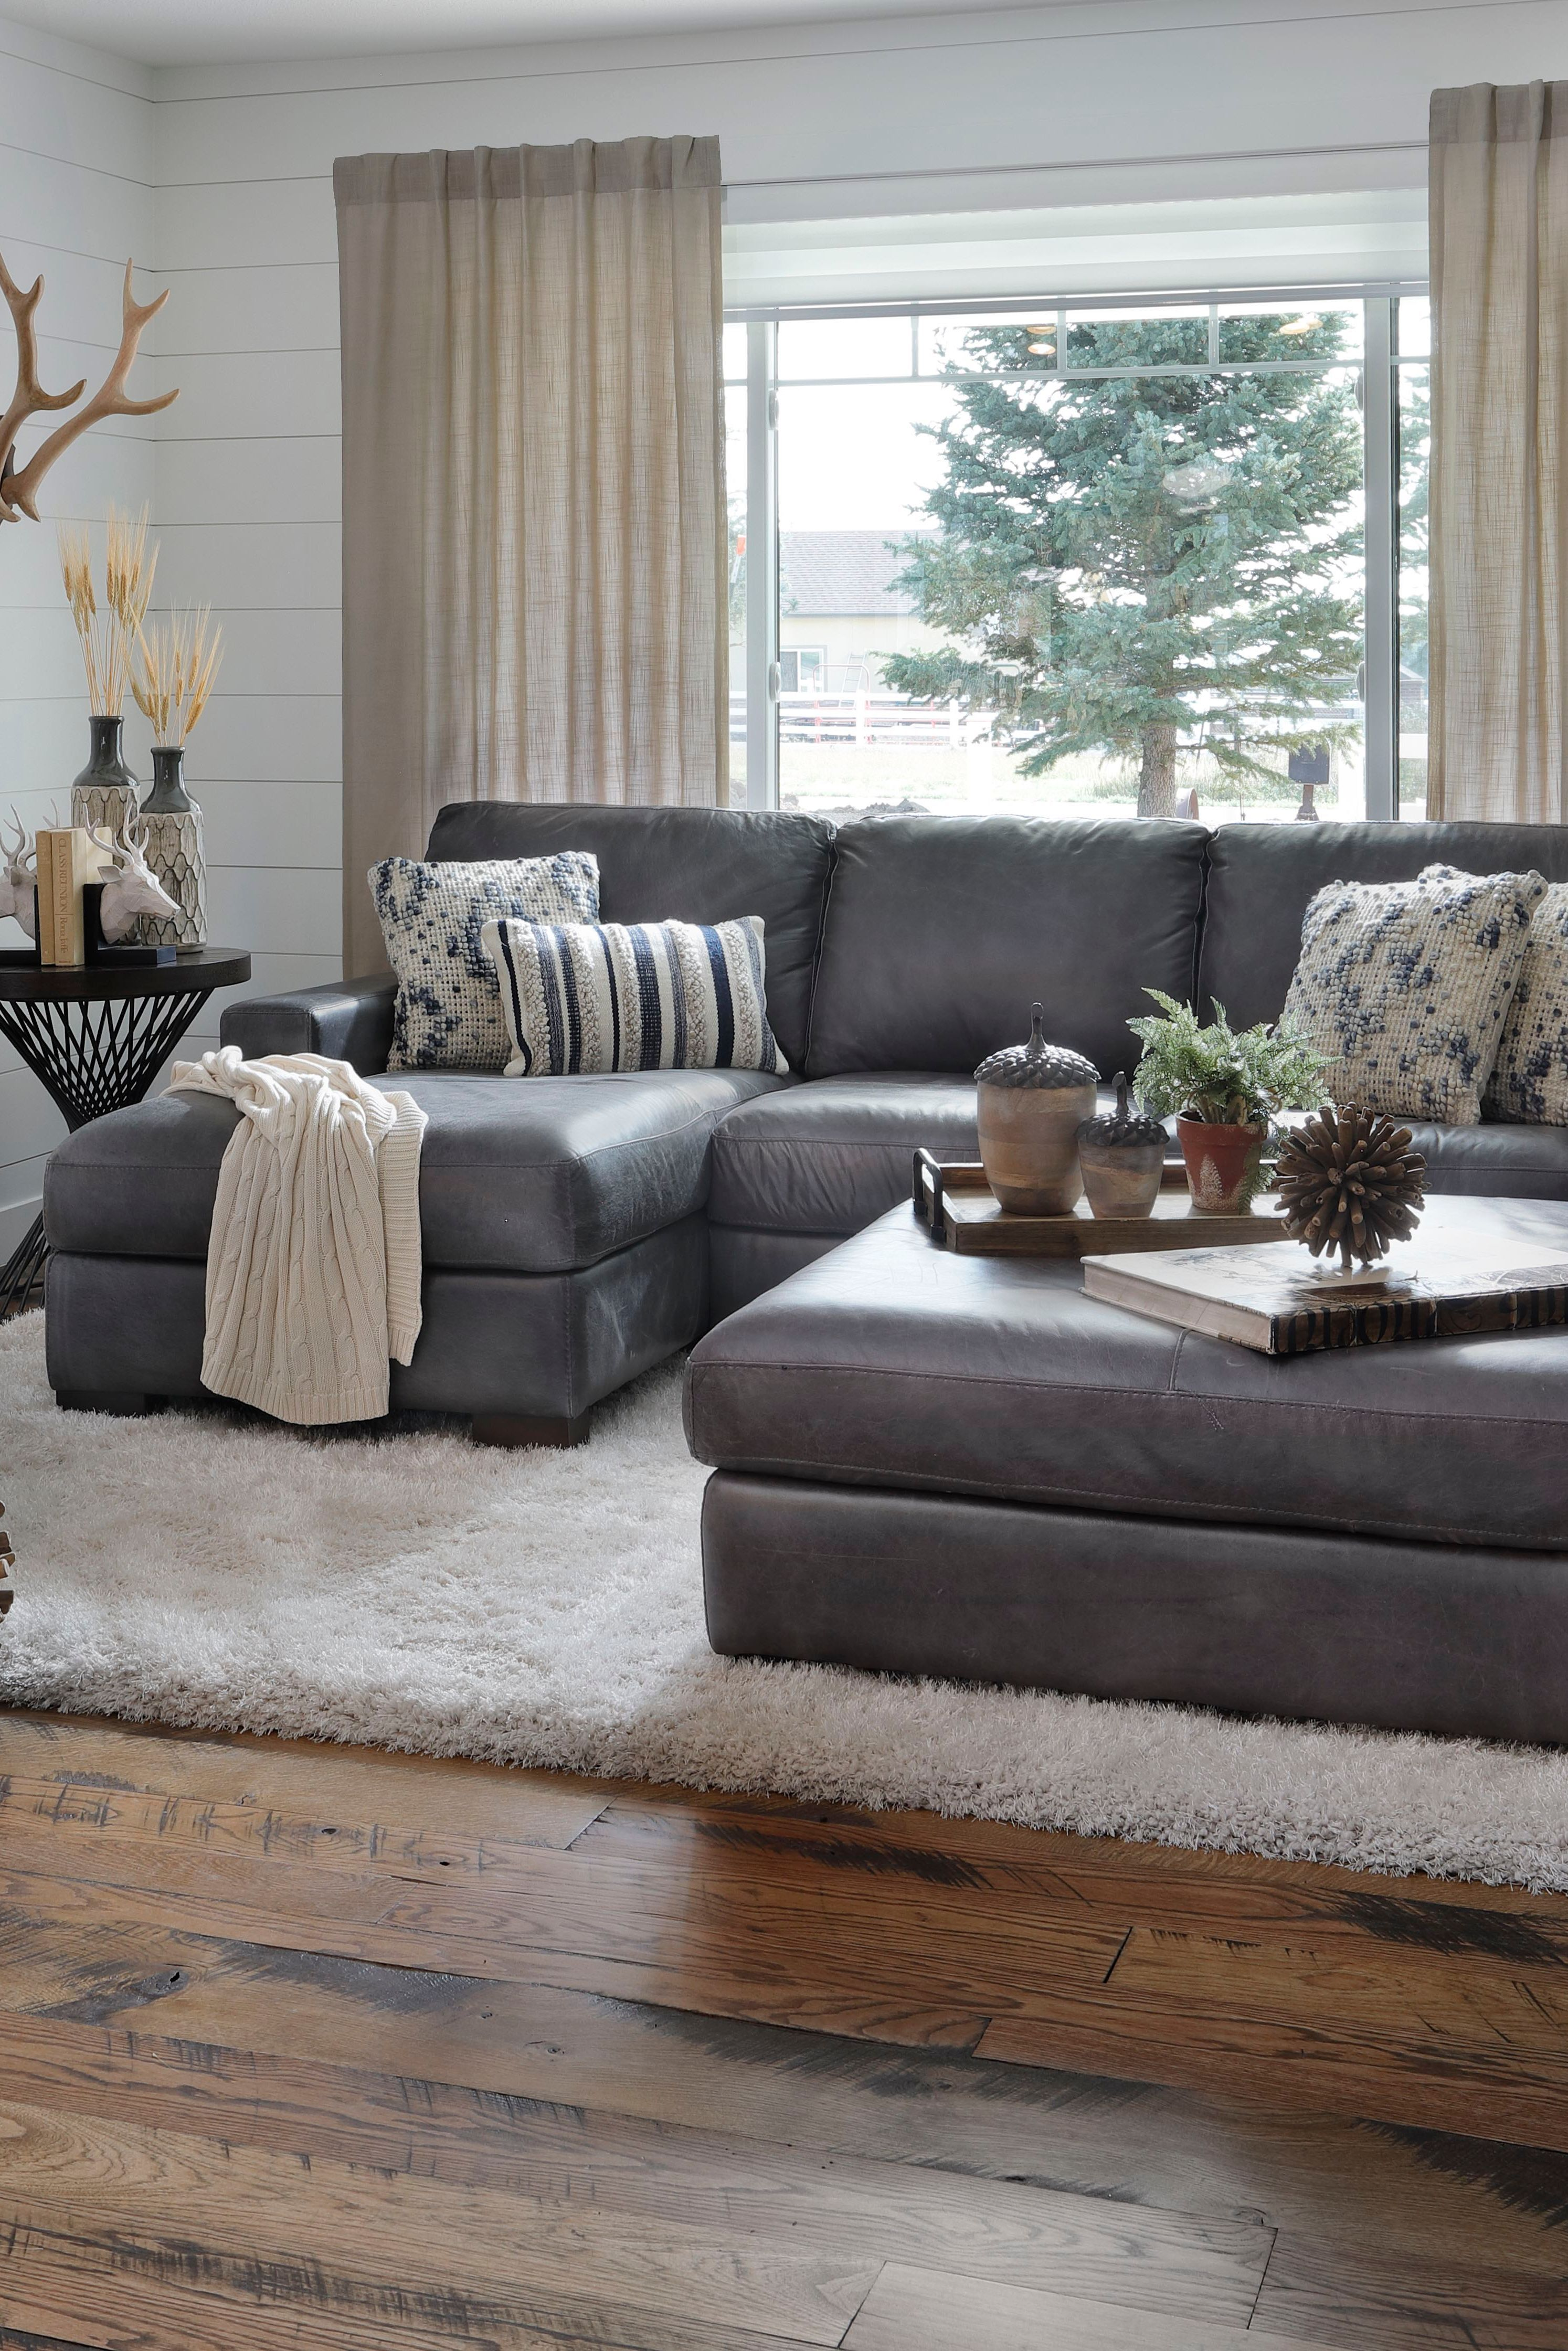 Durango 2 Pc Chaise Sectional Living Room Leather Grey Leather Sofa Living Room Grey Couch Living Room